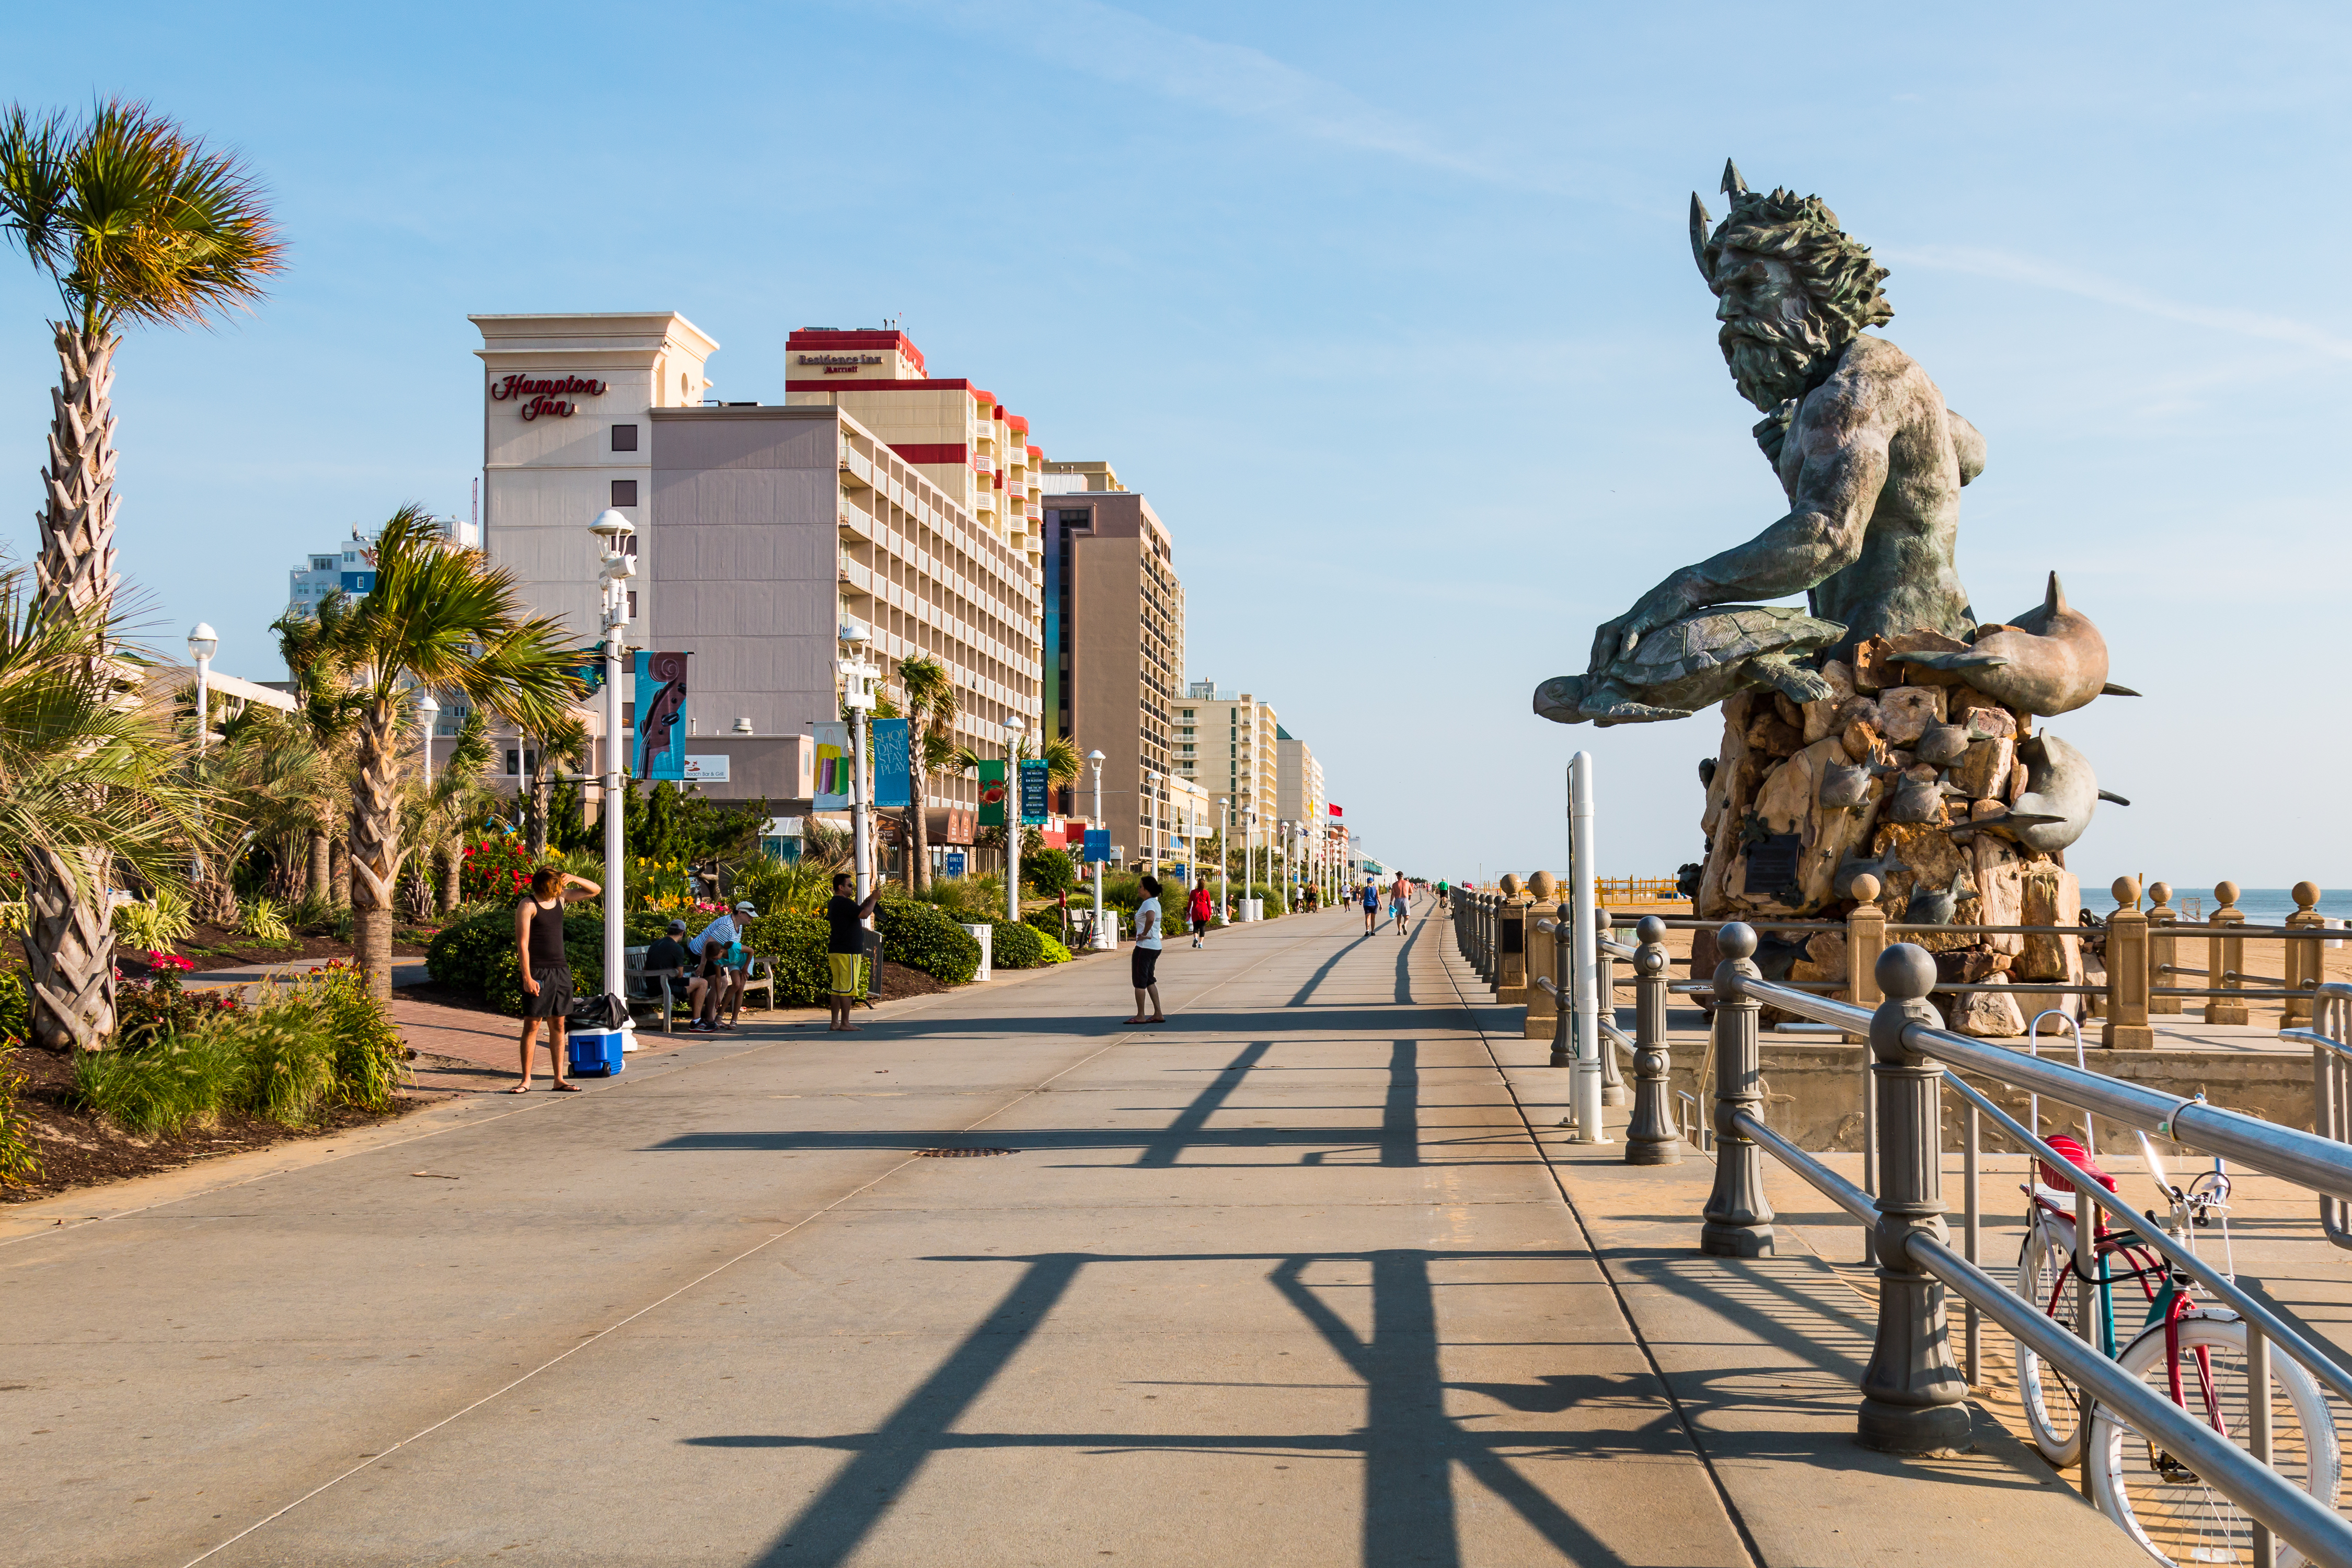 The King Neptune statue by sculptor Paul DiPasquale along the 3-mile long oceanfront boardwalk lined with high-rise hotels on July 13, 2017. Shutterstock image via Sherry V Smith